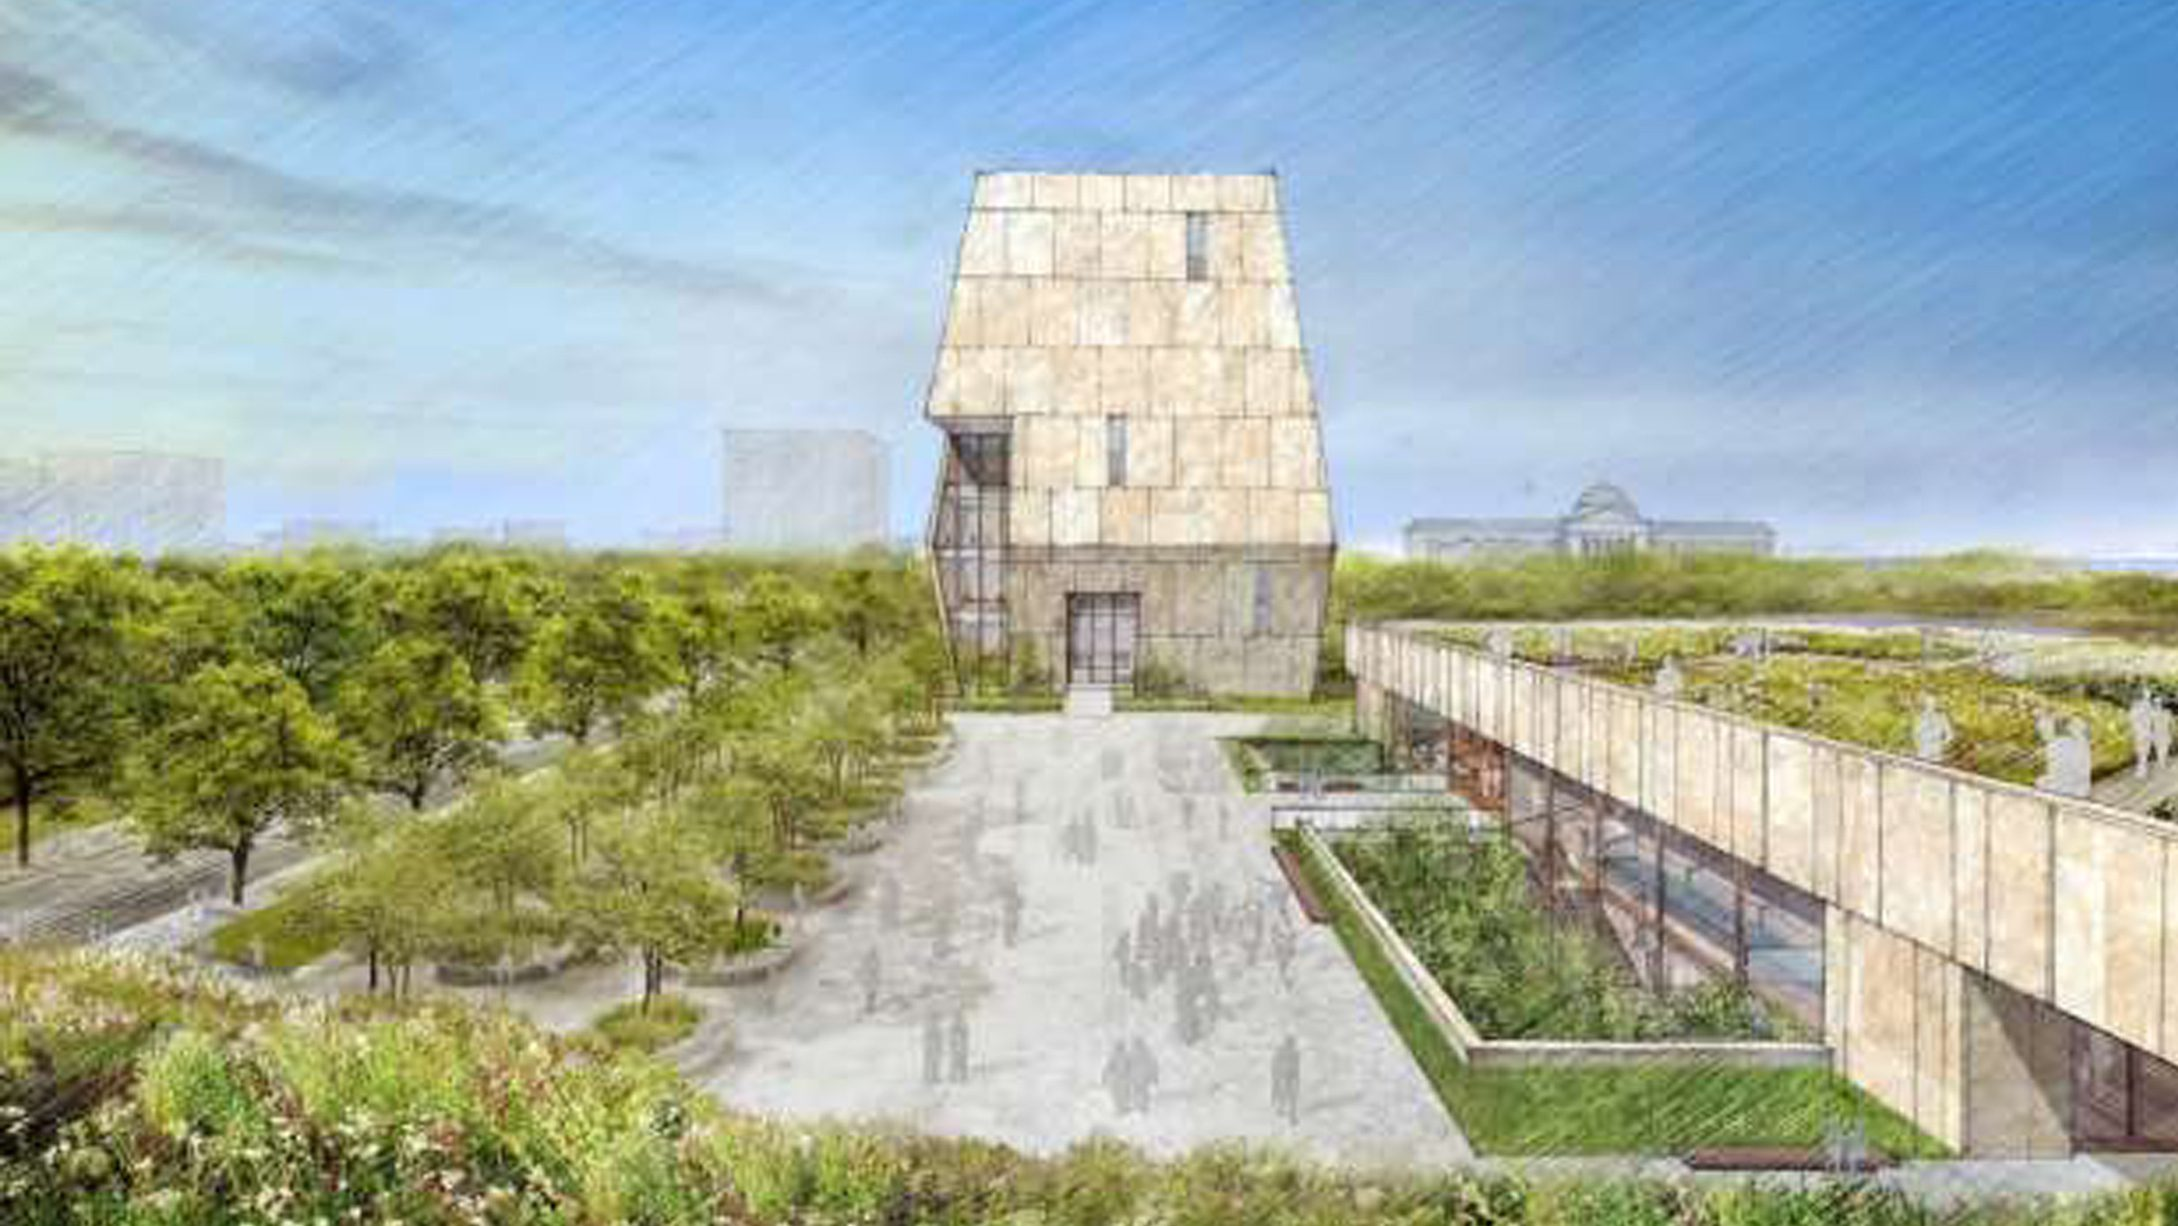 An artist's rendering for the Design of former President Barack Obama Presidential Center to be built in the 500-acre (200-hectare) Jackson Park on Chicago's South Side is shown in Chicago, Illinois, U.S. in this image released on May 3, 2017.   Courtesy Obama Foundation/Handout via REUTERS  ATTENTION EDITORS - THIS IMAGE WAS PROVIDED BY A THIRD PARTY. EDITORIAL USE ONLY. NO RESALES. NO ARCHIVE. - RTS150OP